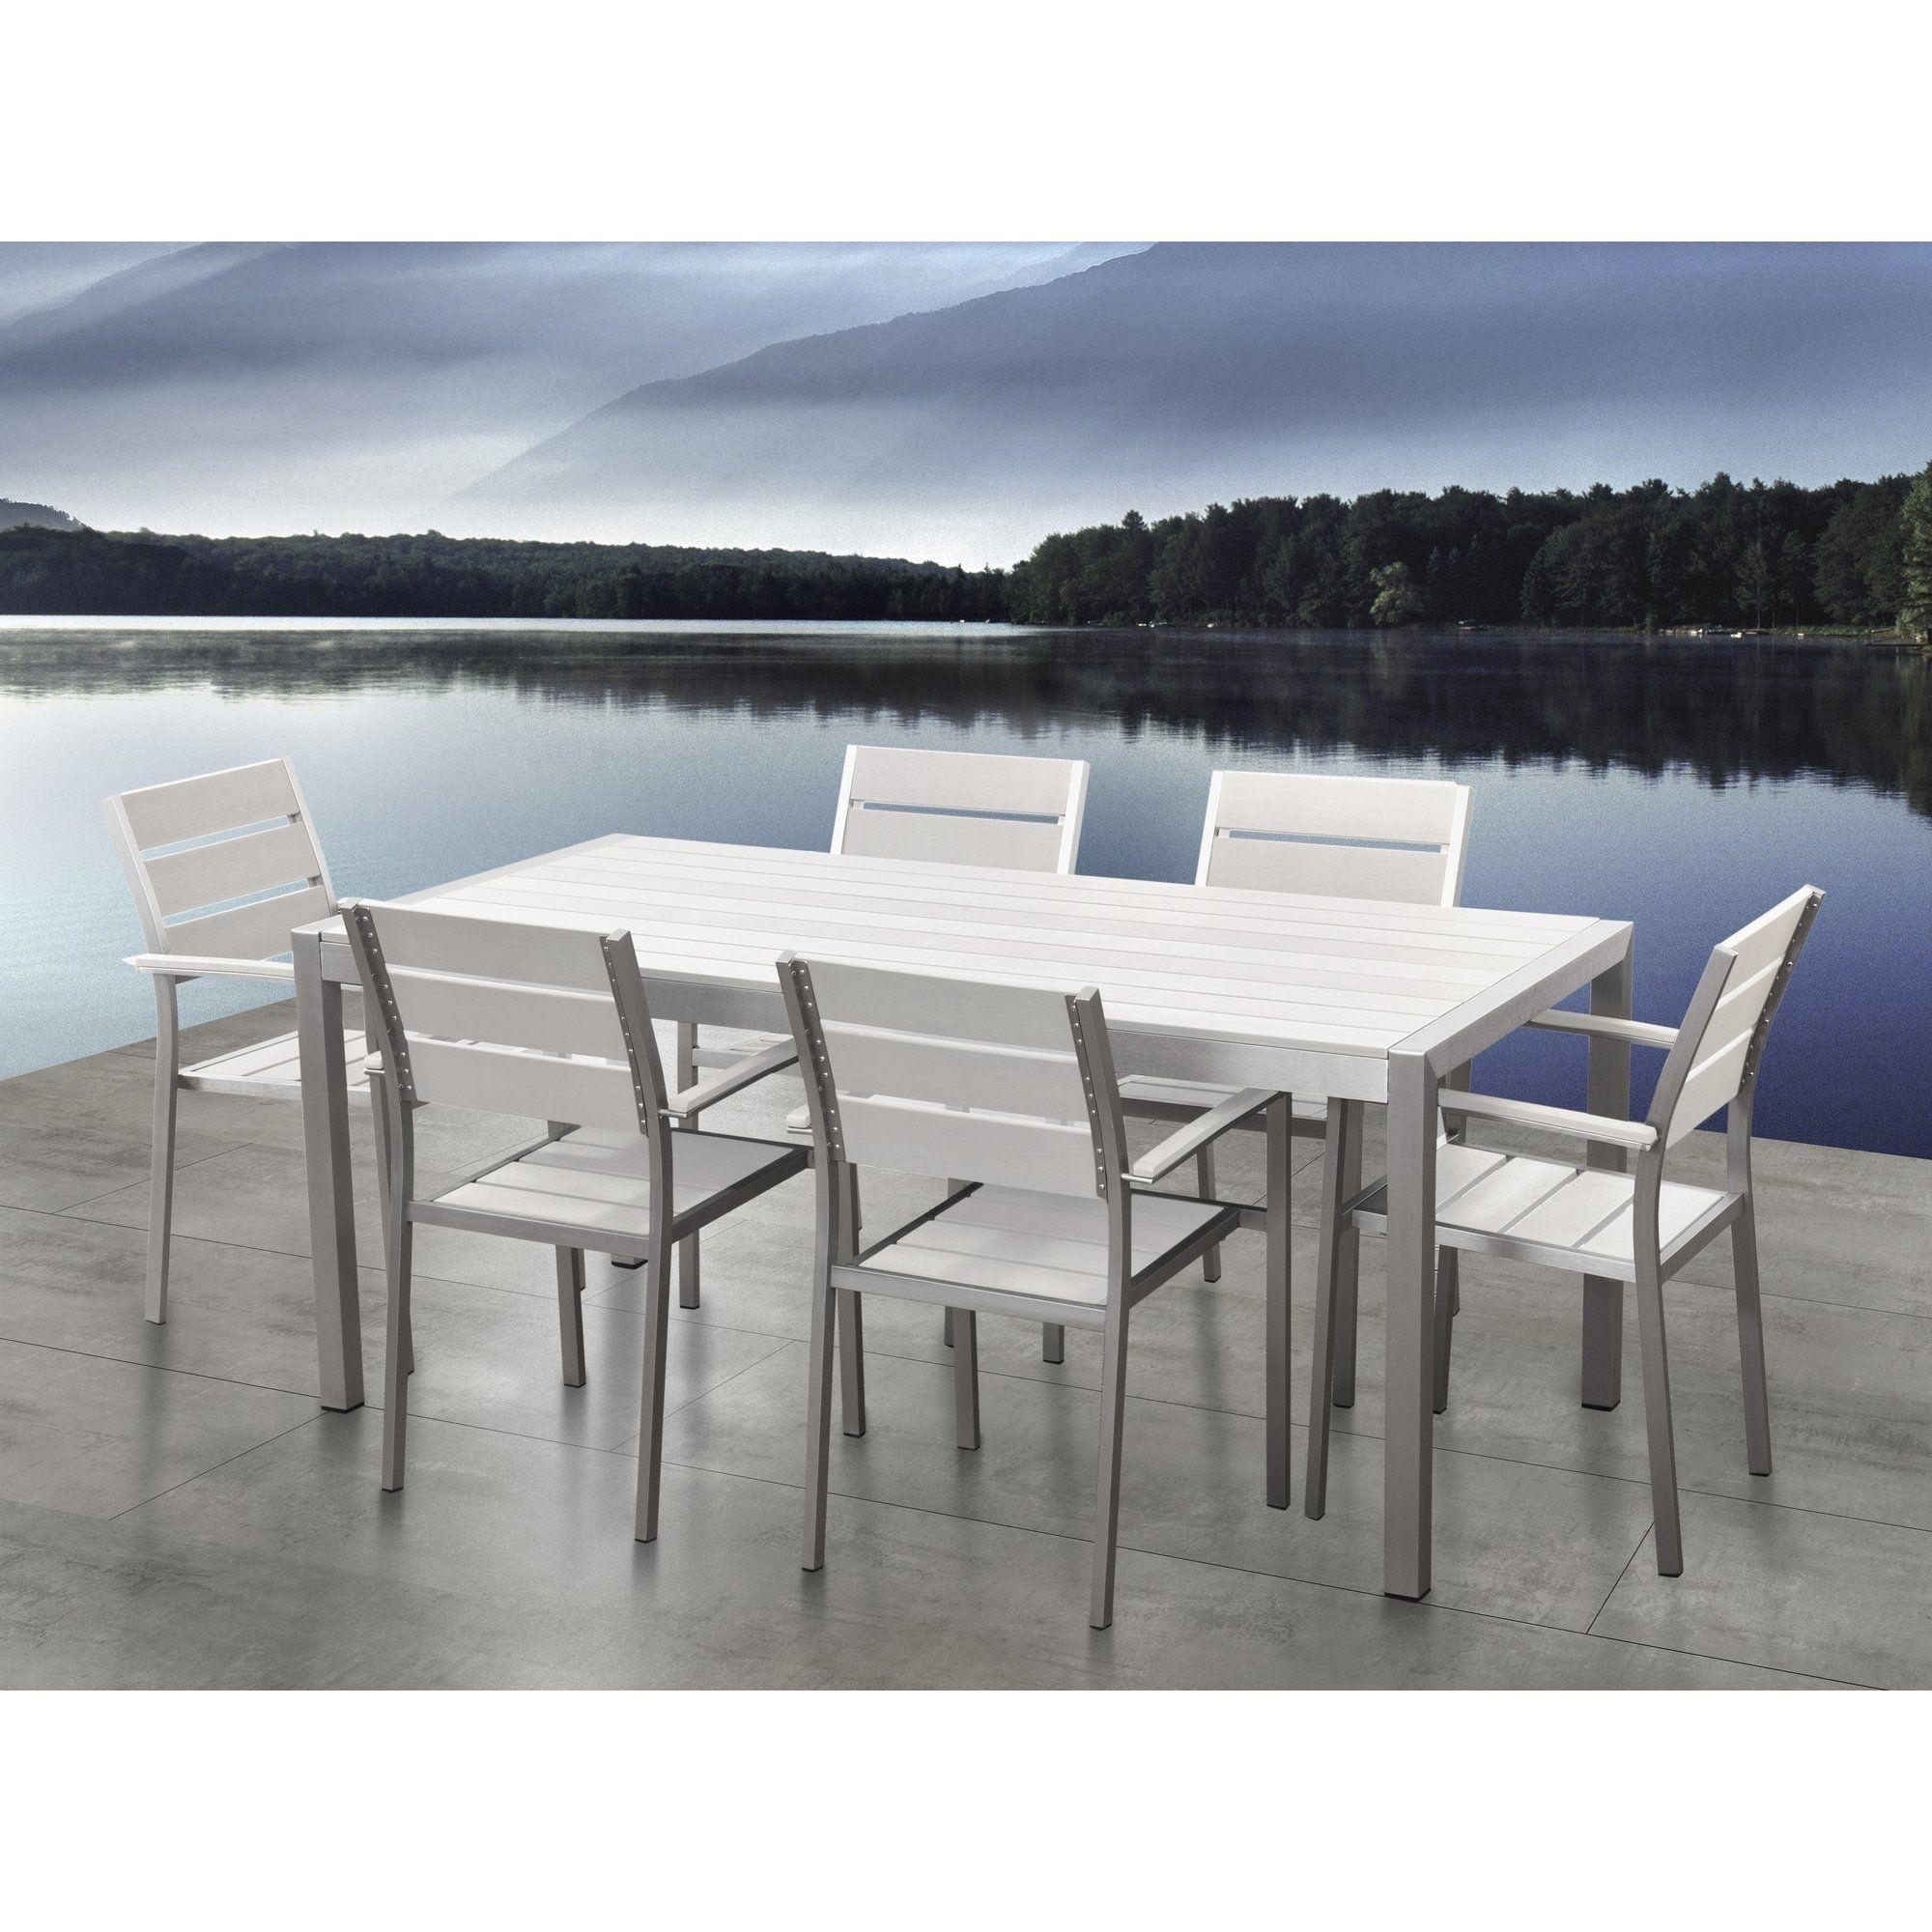 Bret 7 Piece Dining Set | Dining, Outdoor Products And Patios Regarding Recent Logan 7 Piece Dining Sets (Image 4 of 20)